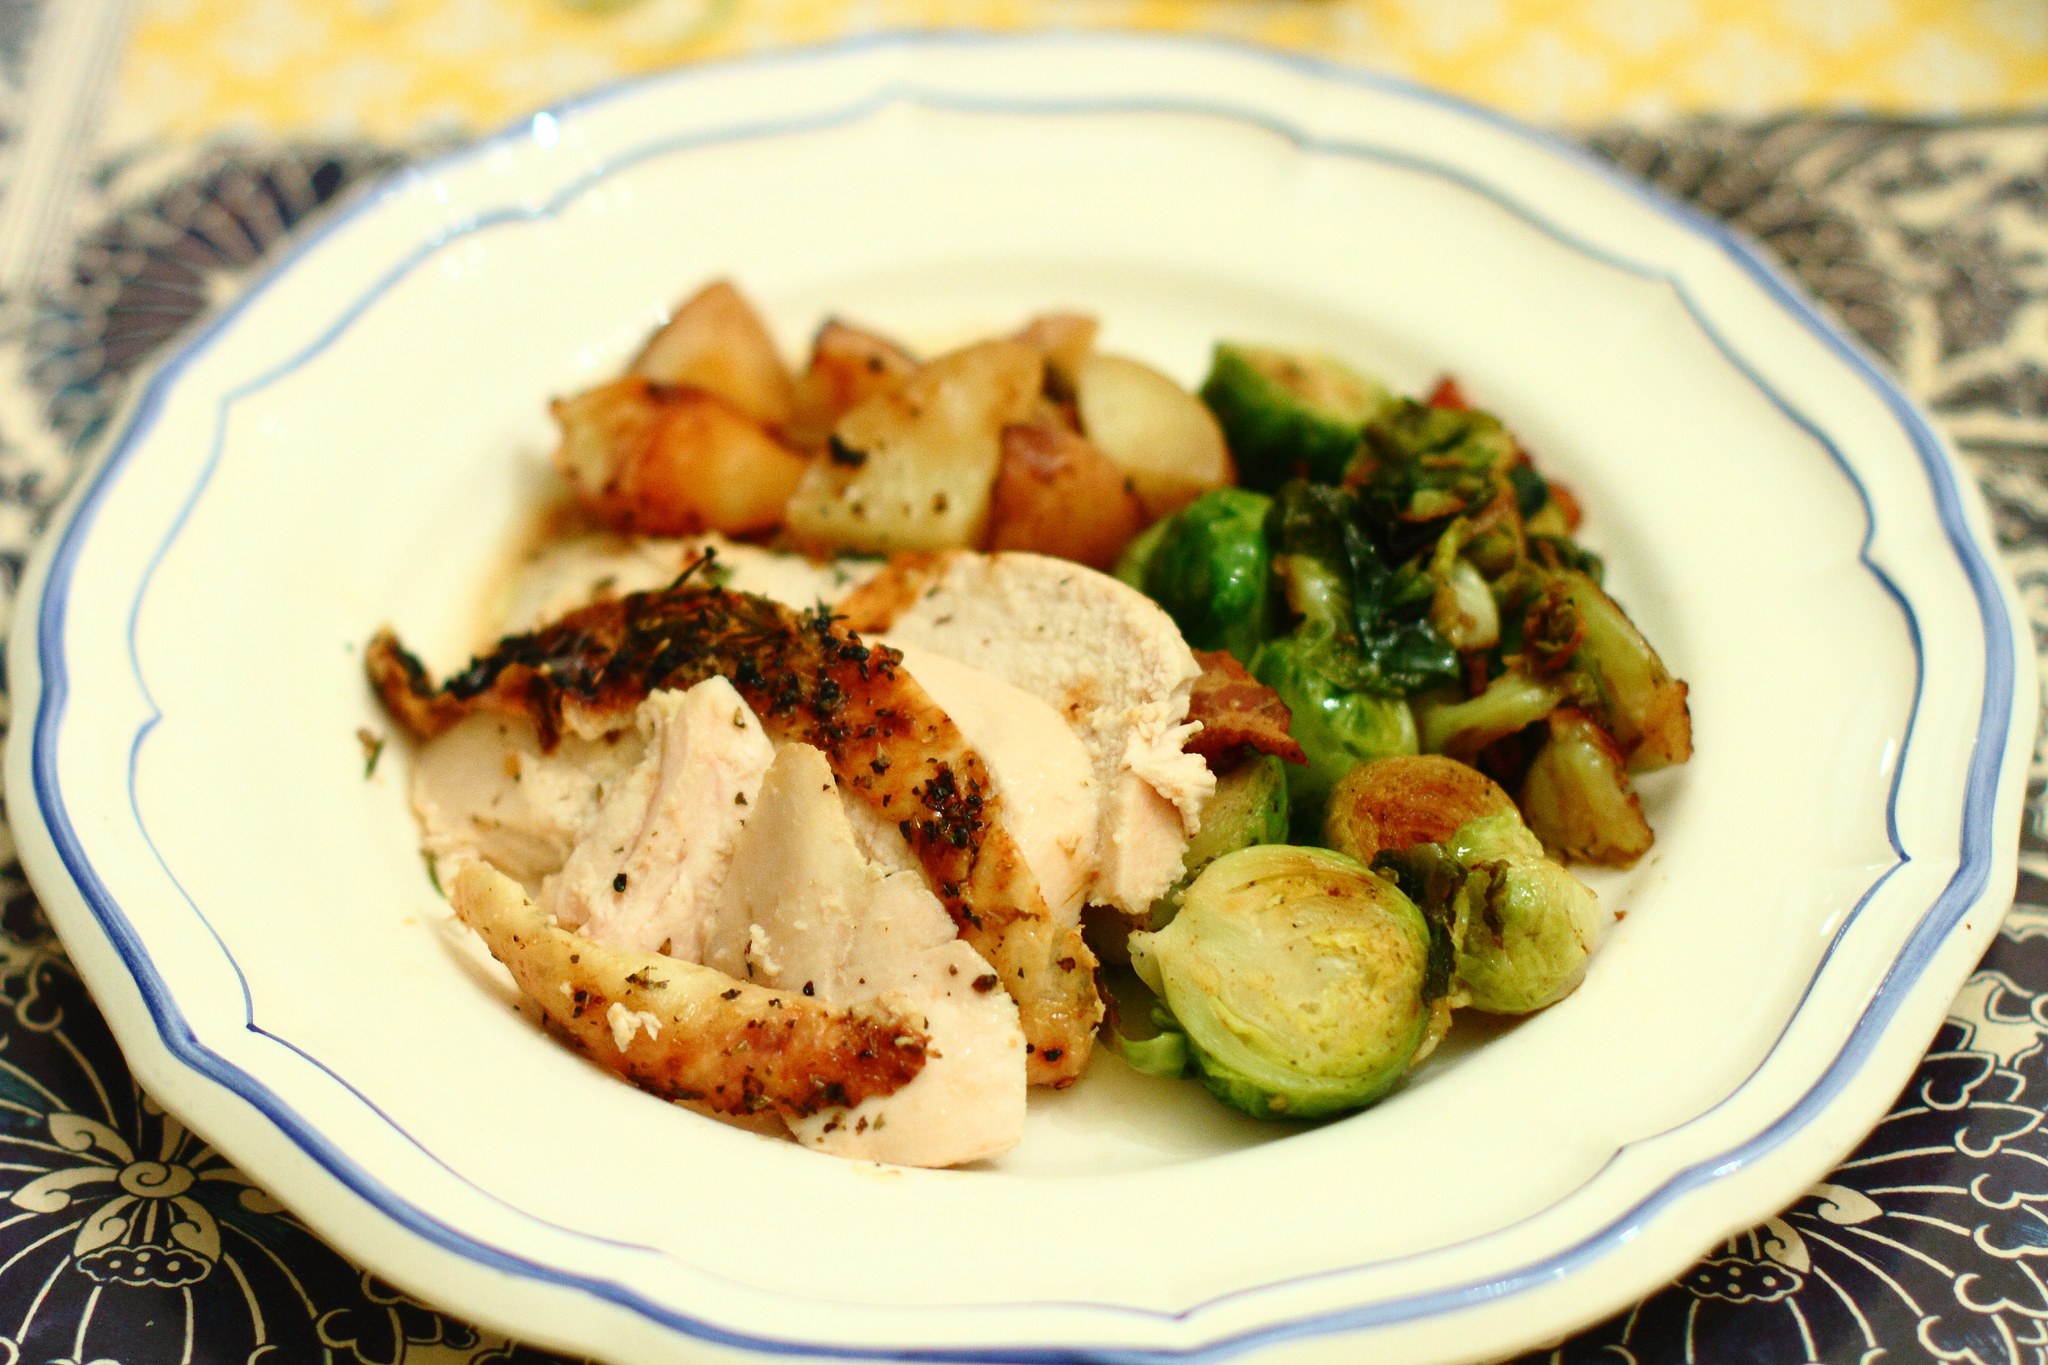 Roast Chicken and Potatoes with Brussels Sprouts and Bacon